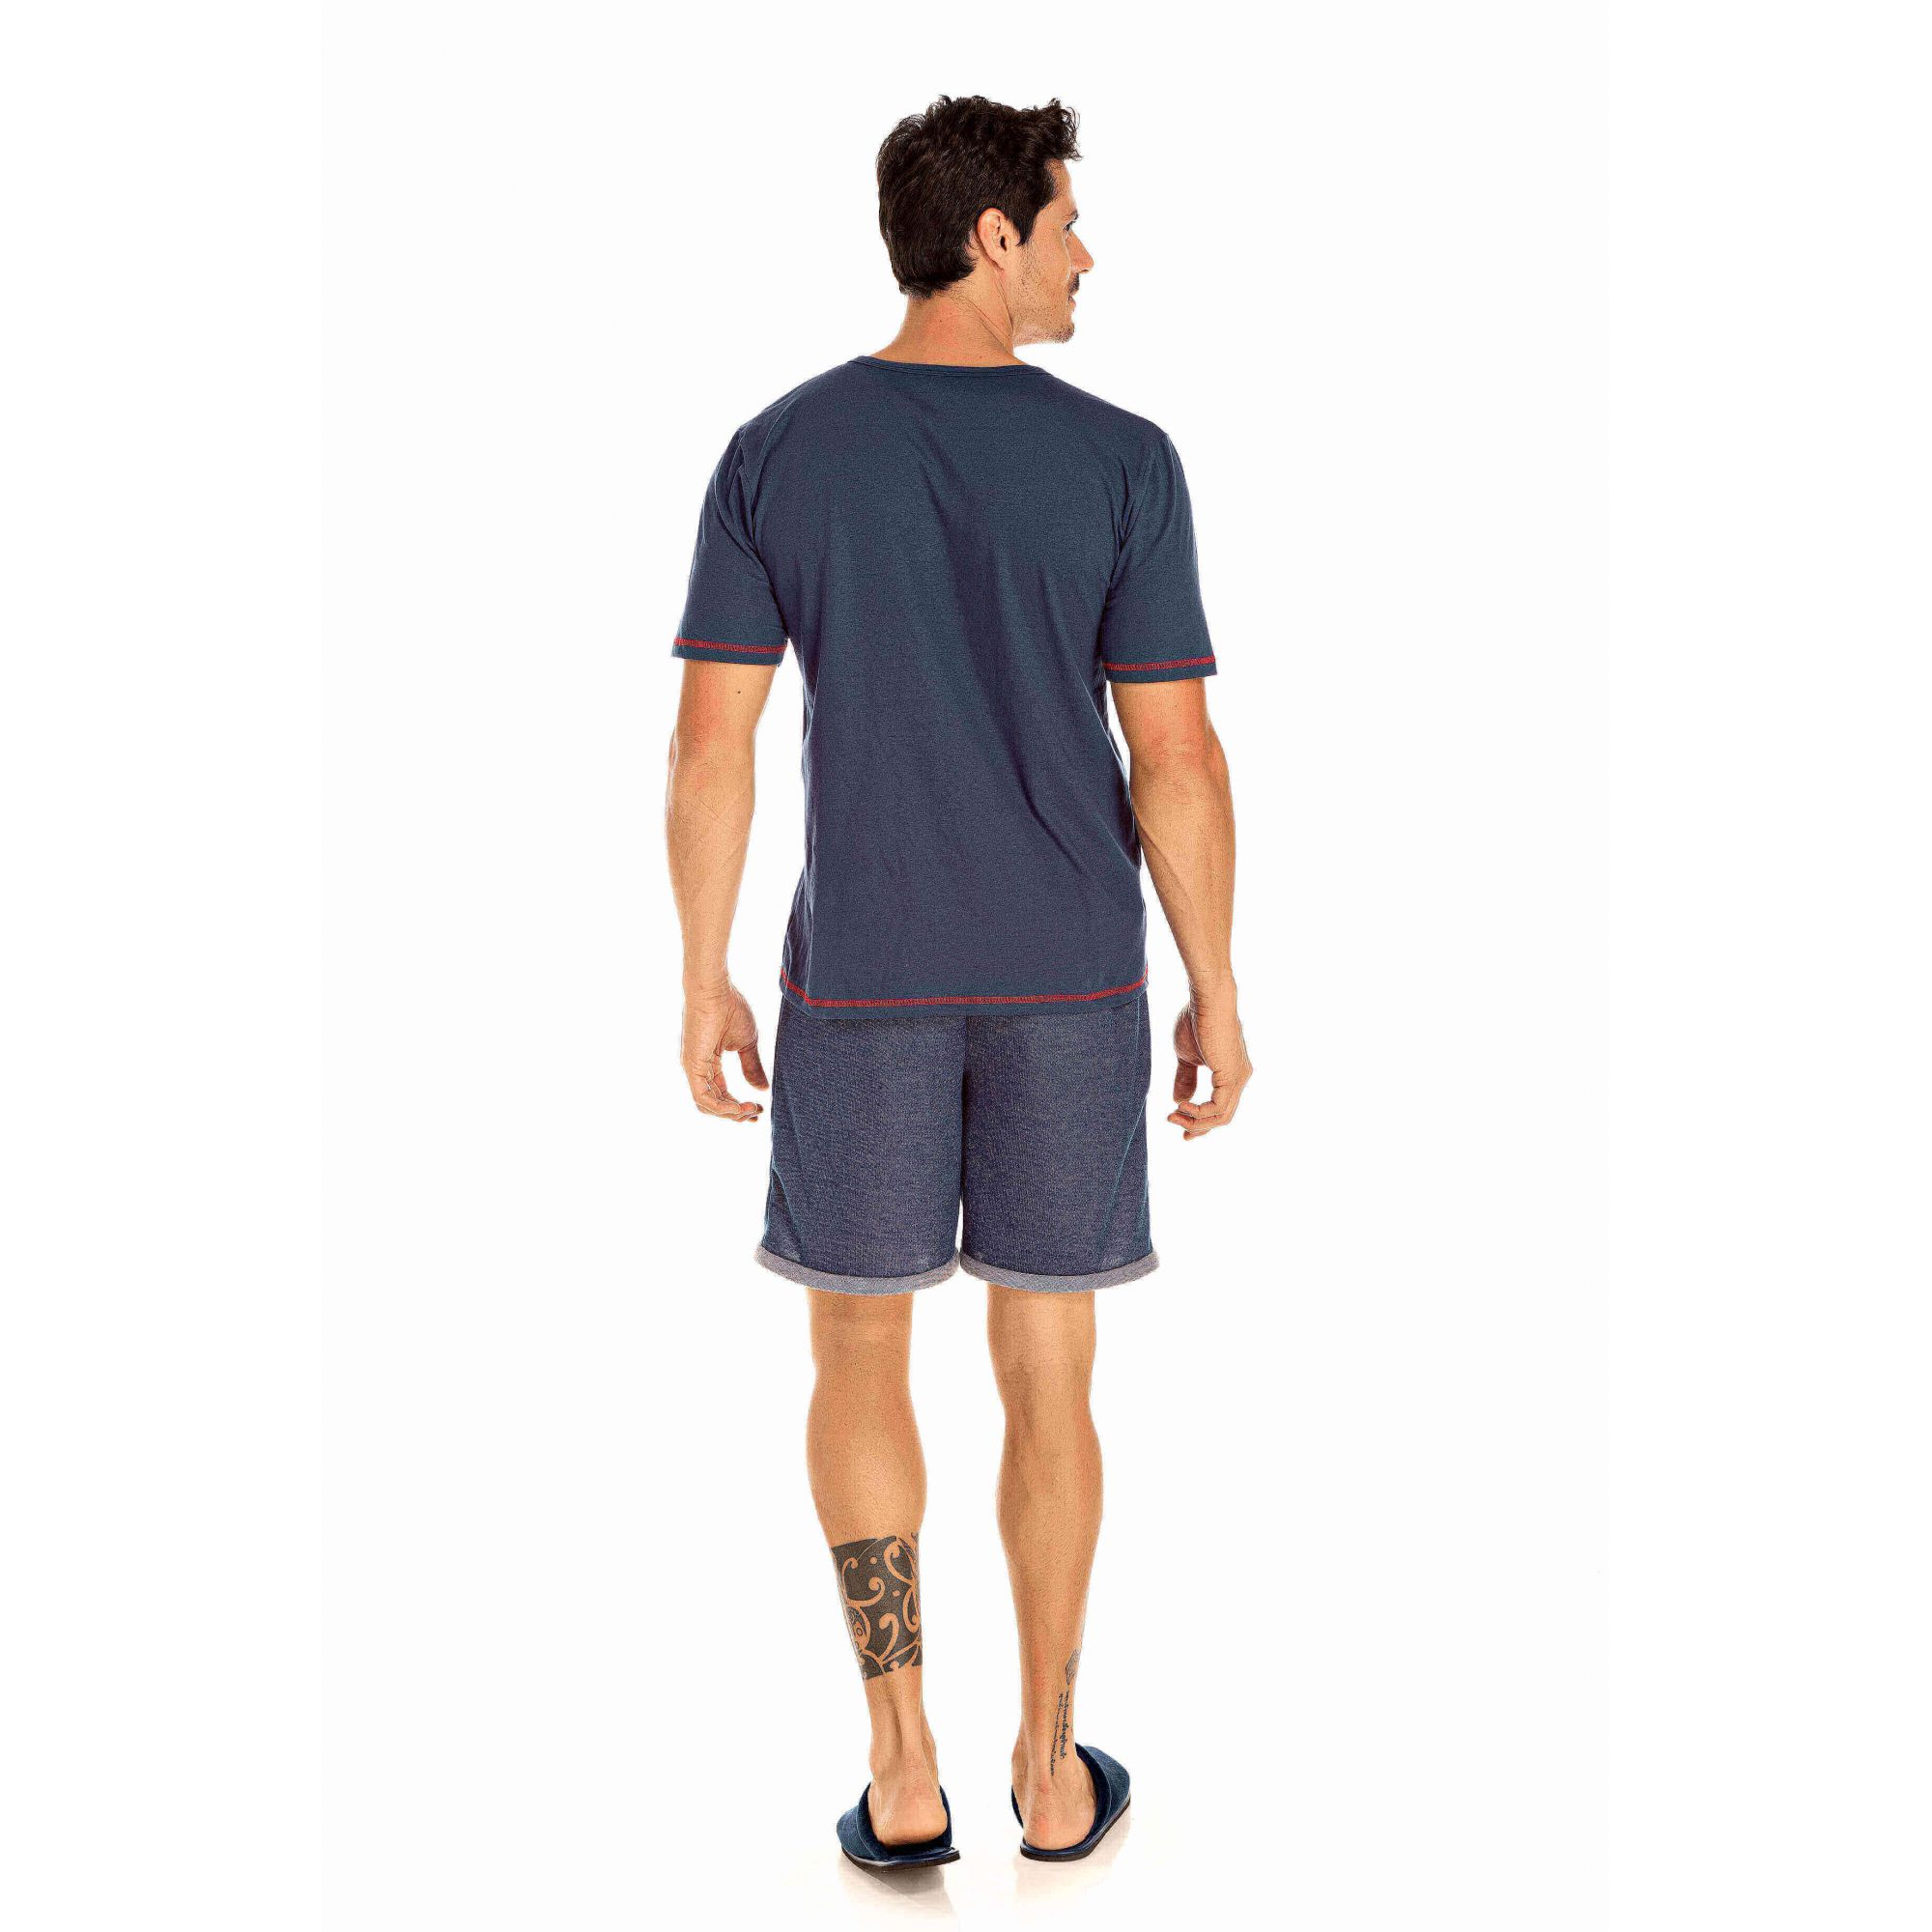 107/D - Pijama Adulto Masculino Hey Sailor -  Marinho